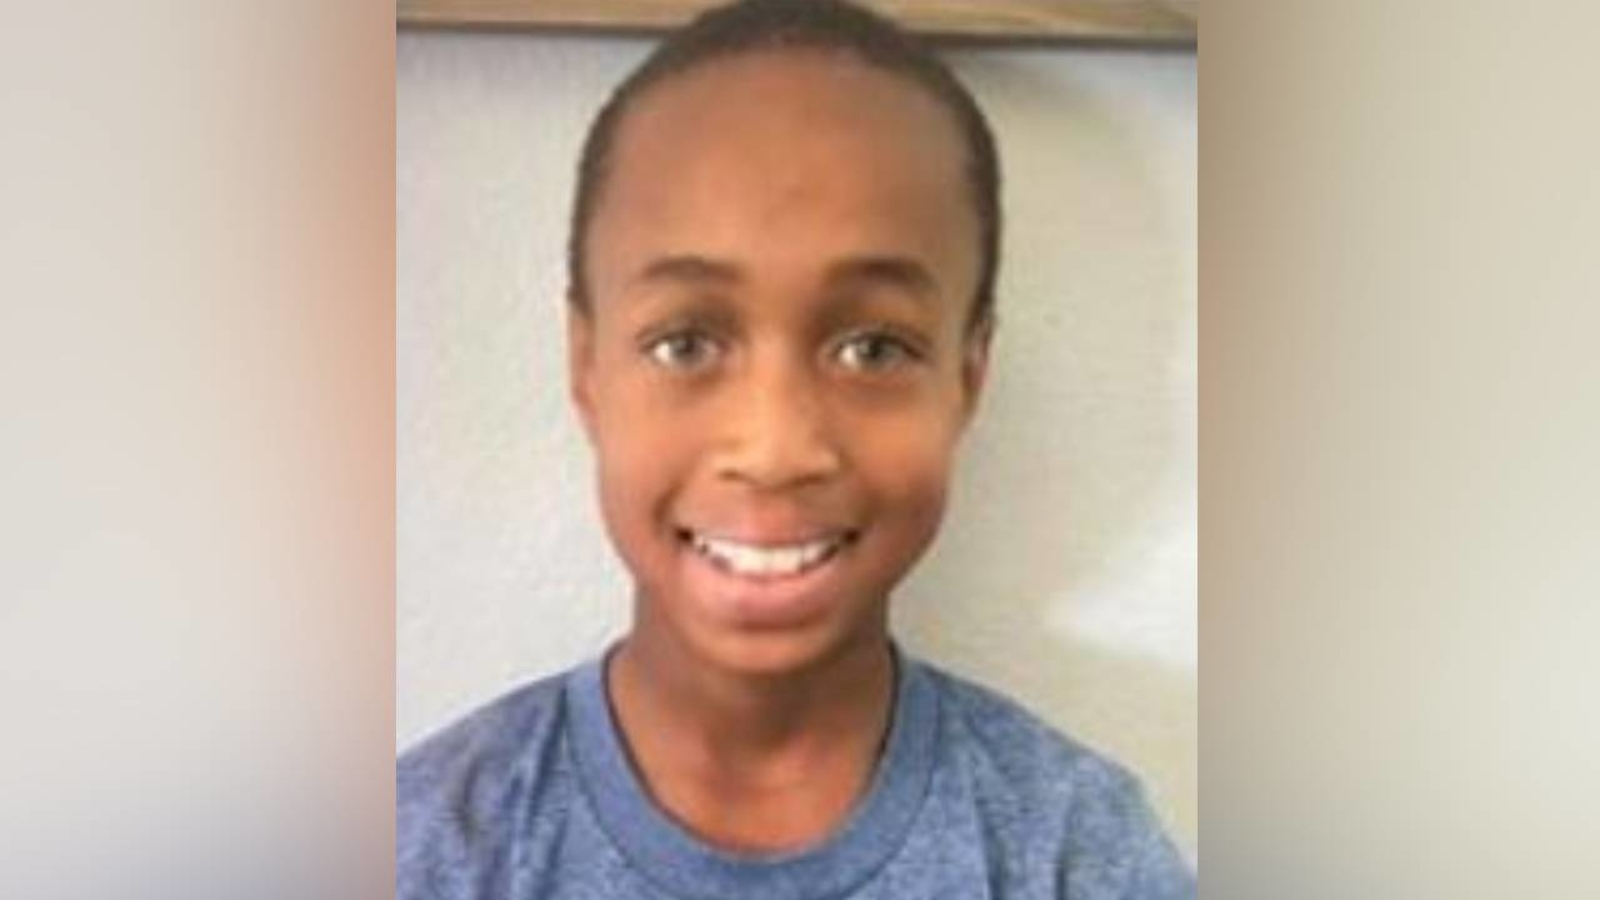 10-year-old boy missing from Pasadena, sheriff says